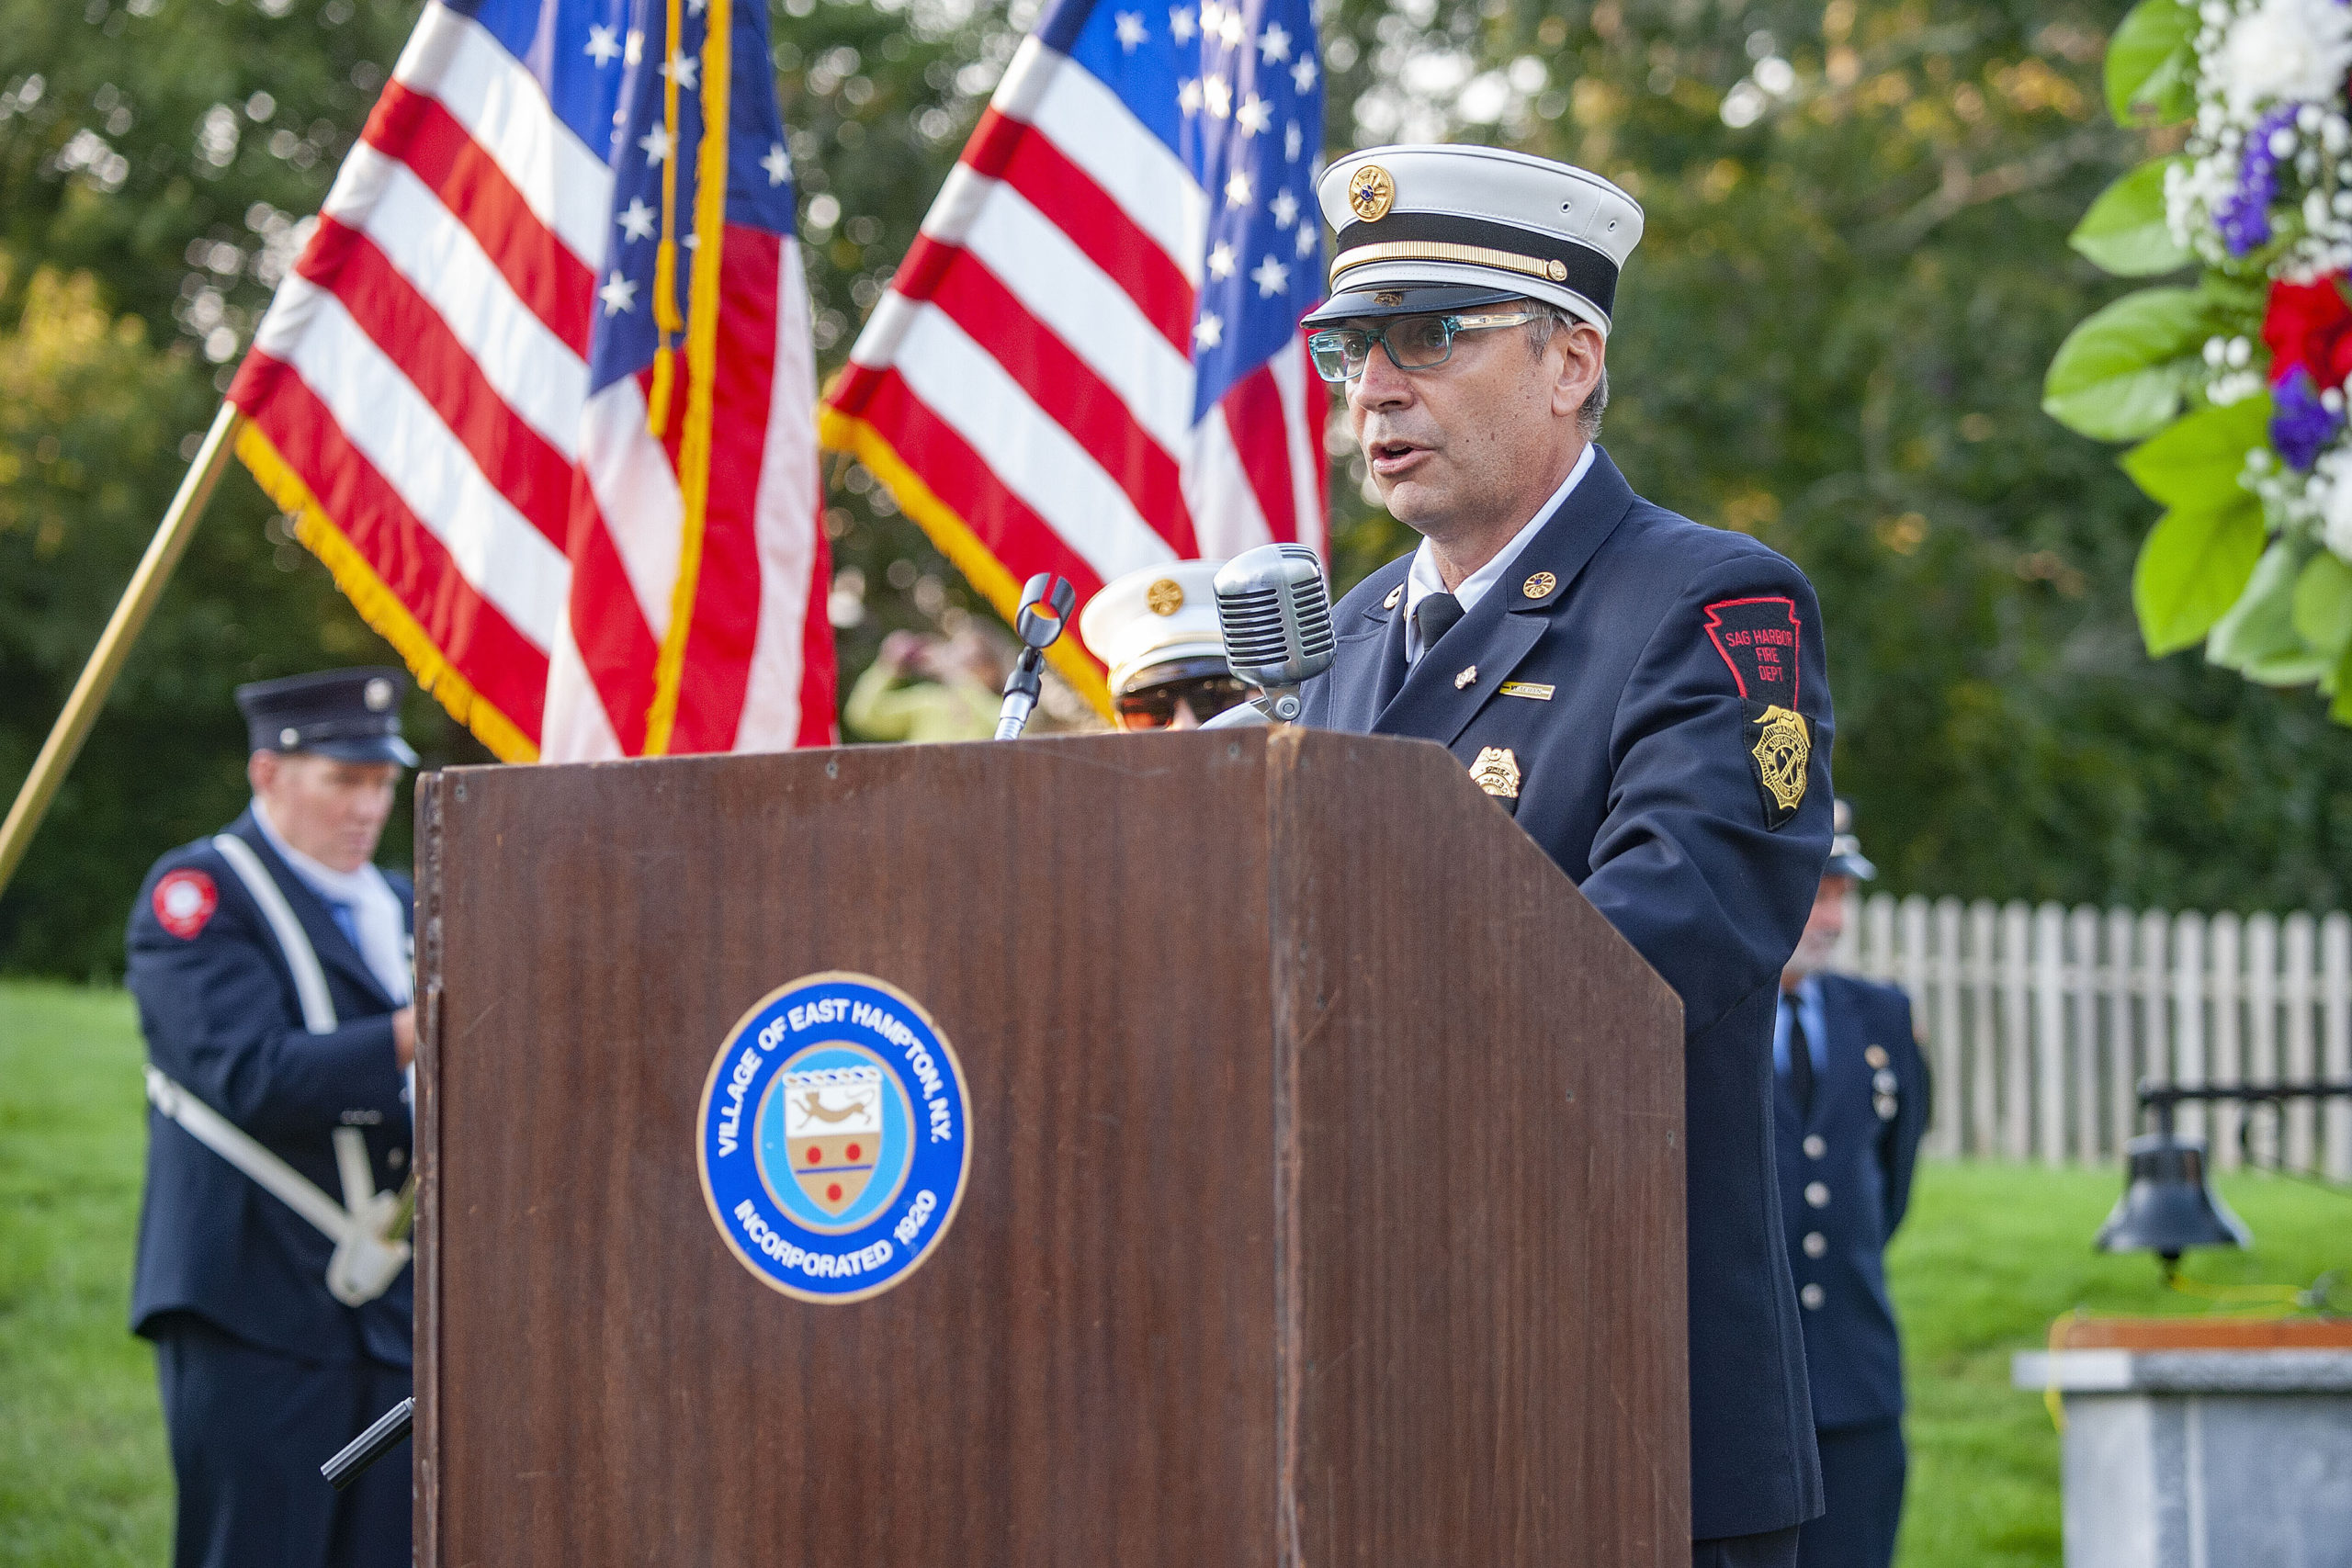 Sag Harbor Fire Department Ex-Chief Tom Gardella gave the Chaplain's address during a ceremony commemorating the 20th anniversary of the attack on the World Trade Center, held on the Village Green in East Hampton and attended by 11 different East End fire, police and EMS agencies on Saturday afternoon.